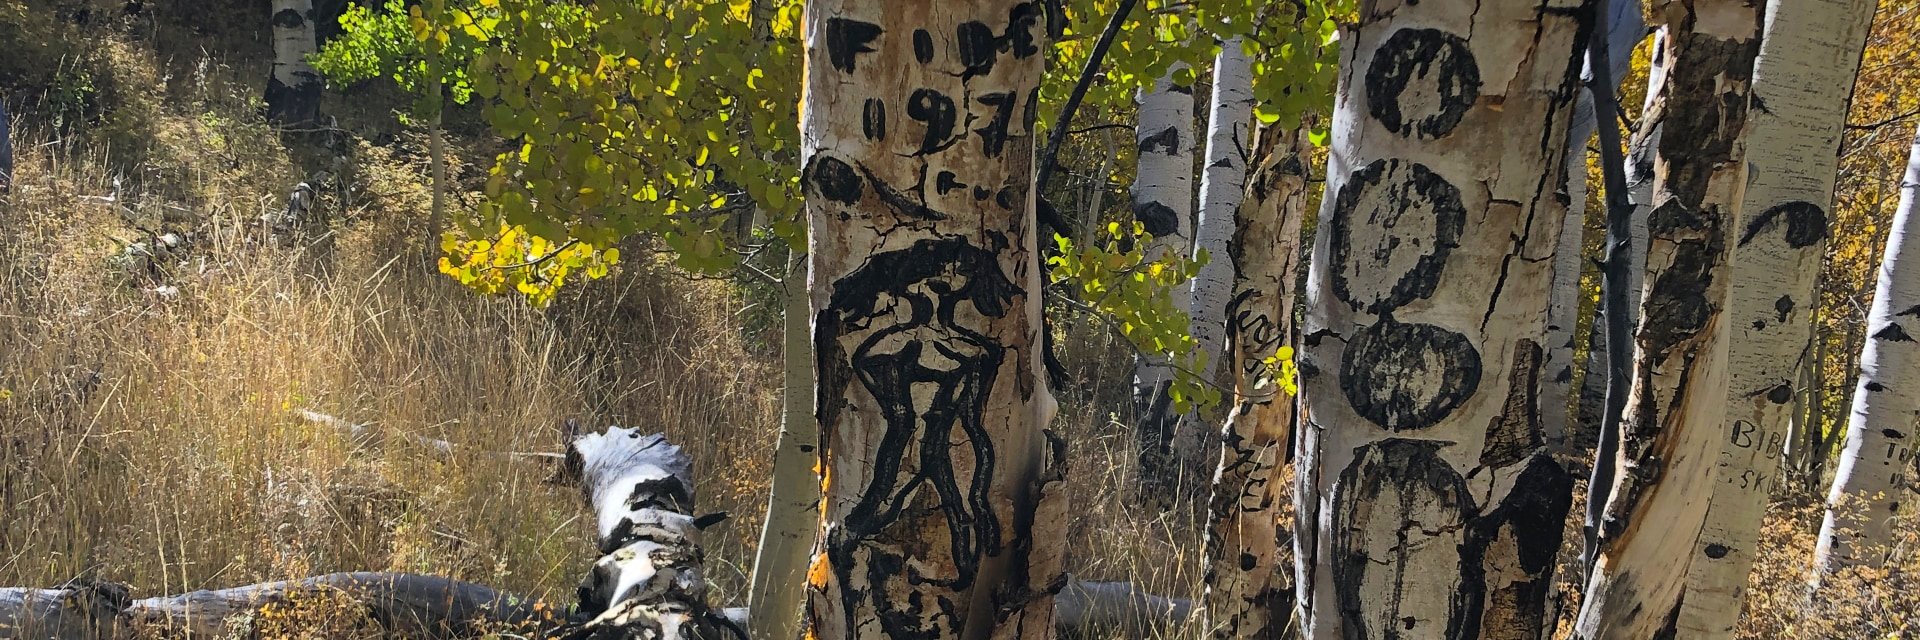 Arborglyphs cut by sheep herders